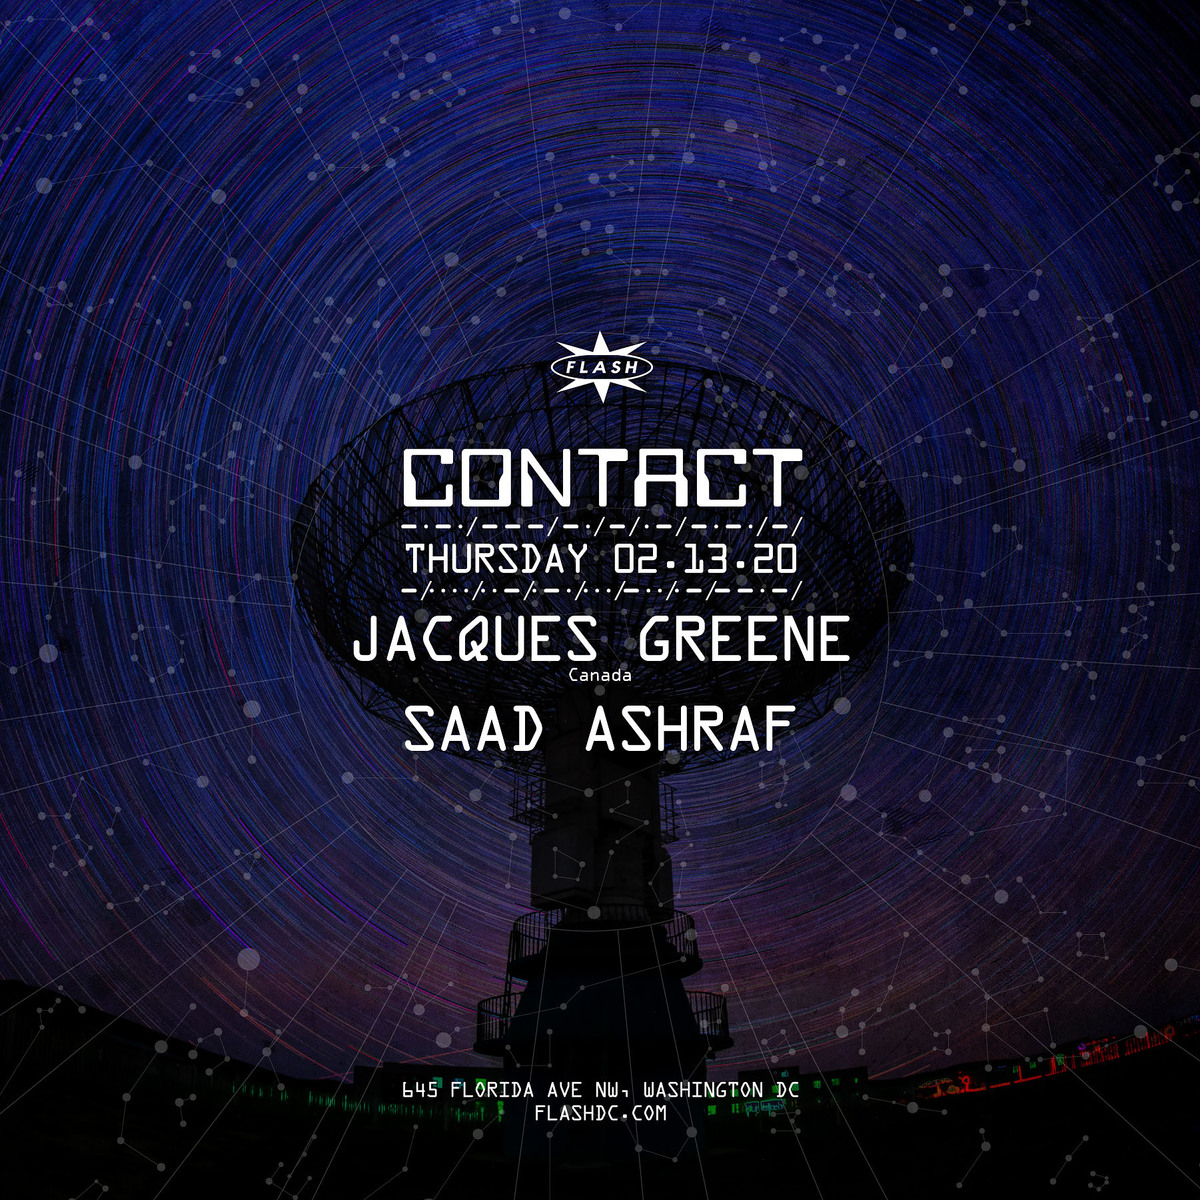 CONTACT: Jacques Greene event thumbnail